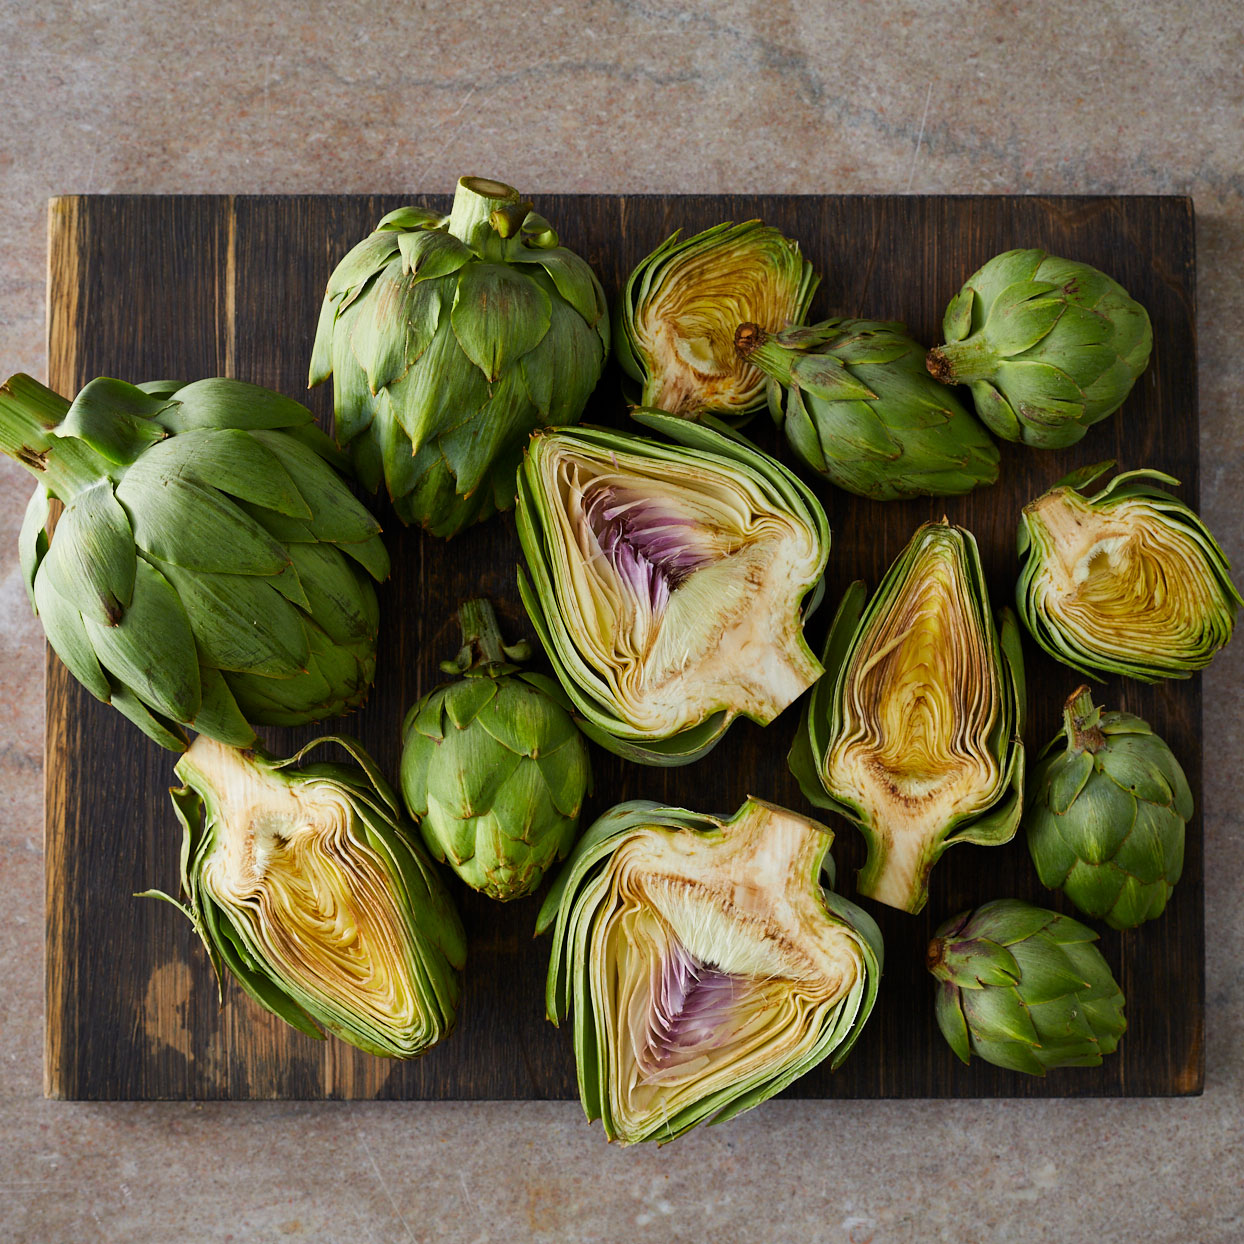 Artichokes-cut-in-half